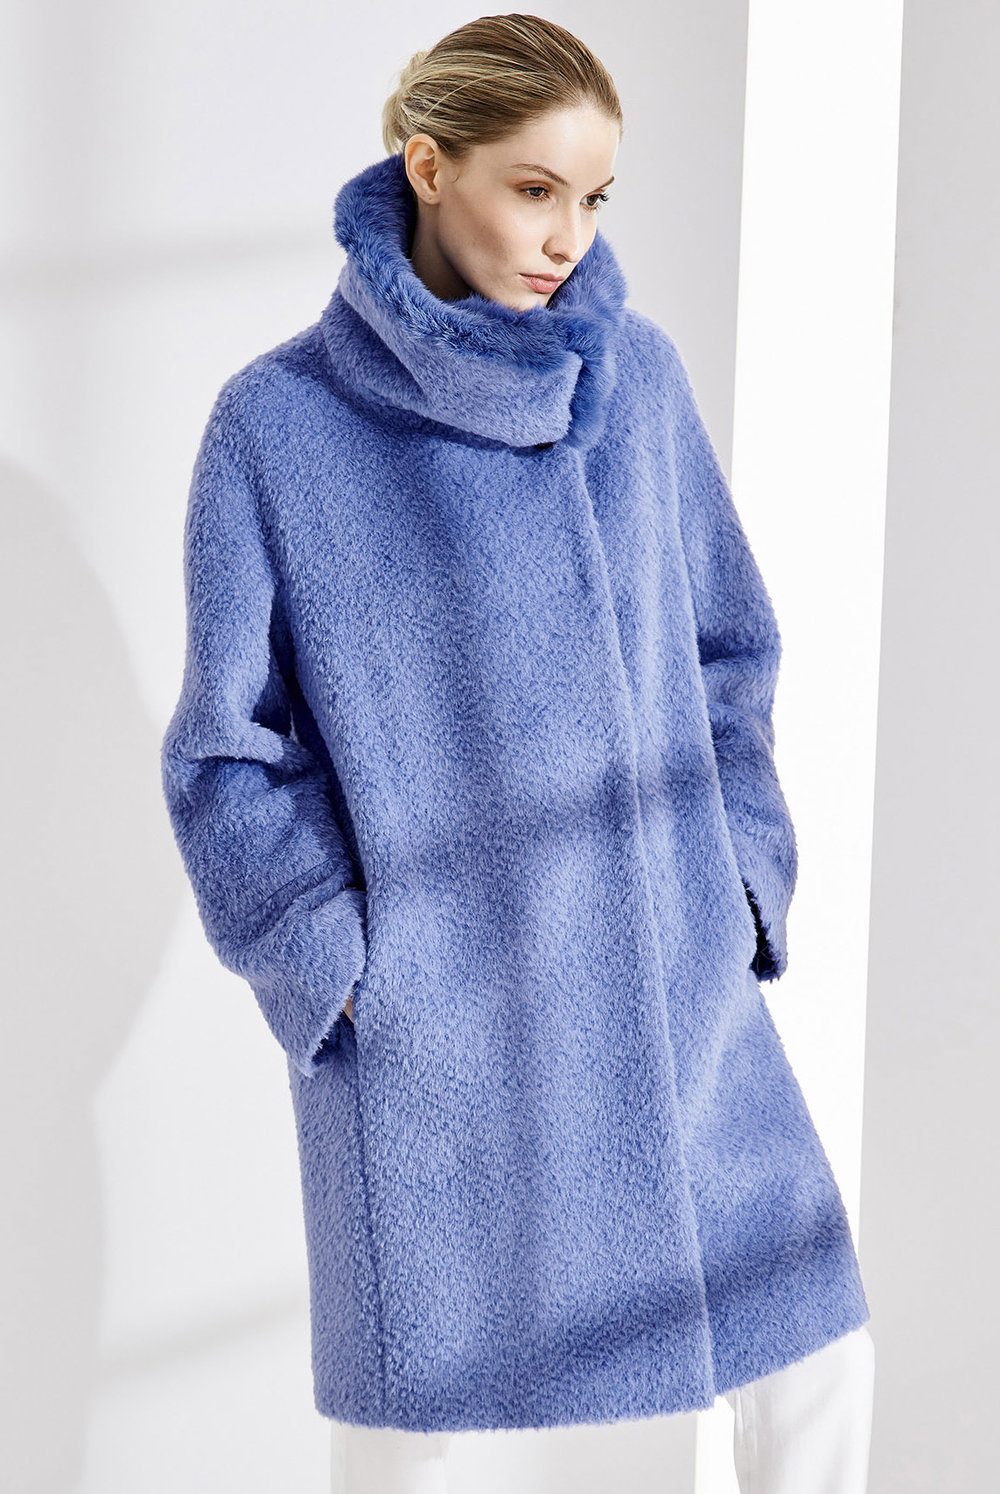 COAT ALESSANDRA AT-308   Colors: winter white, blue, black  Sizes: XS, S, M, L, XL